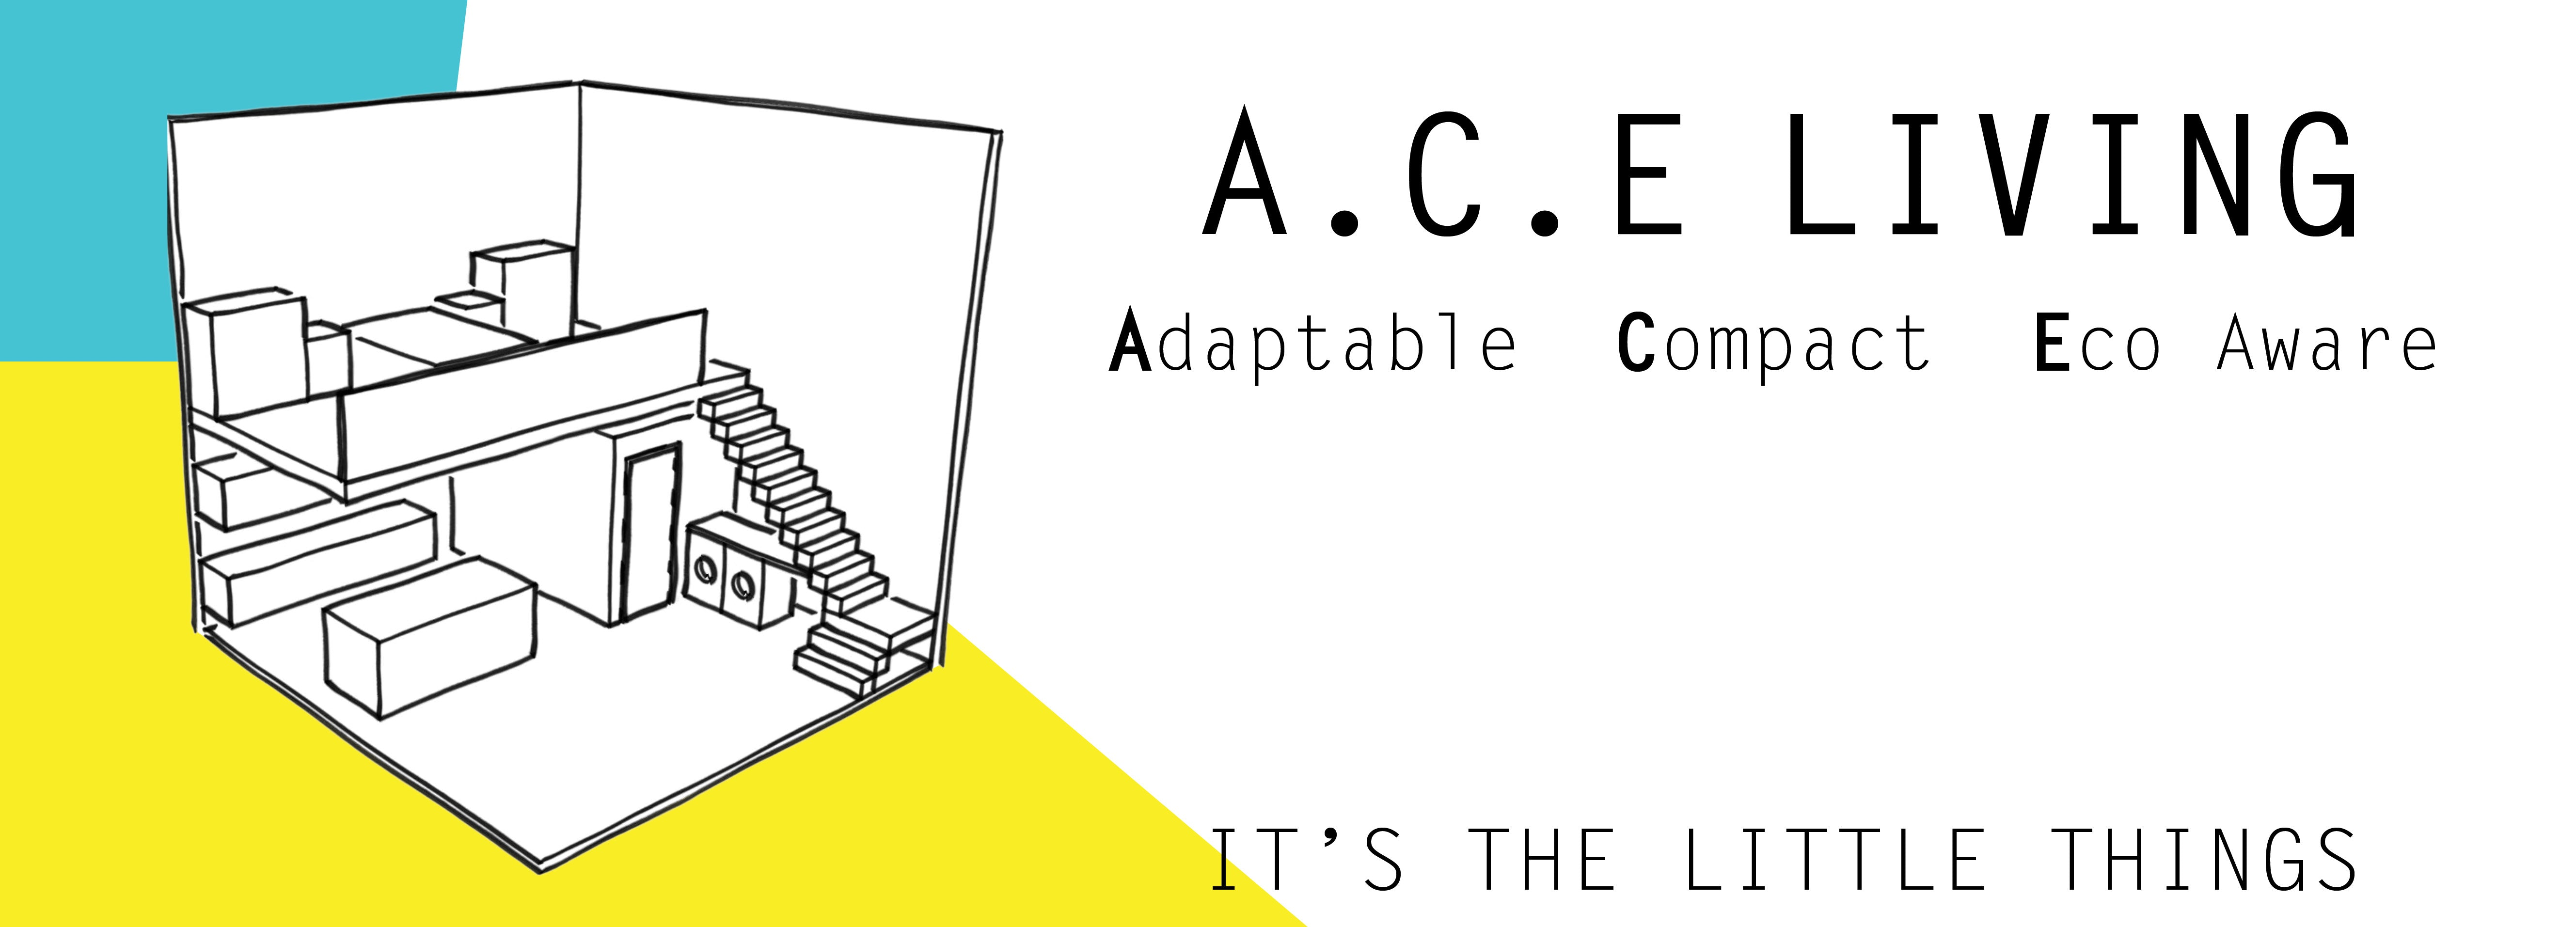 A.C.E Living By Plain and Simple Adaptable Compact Eco Aware Homes